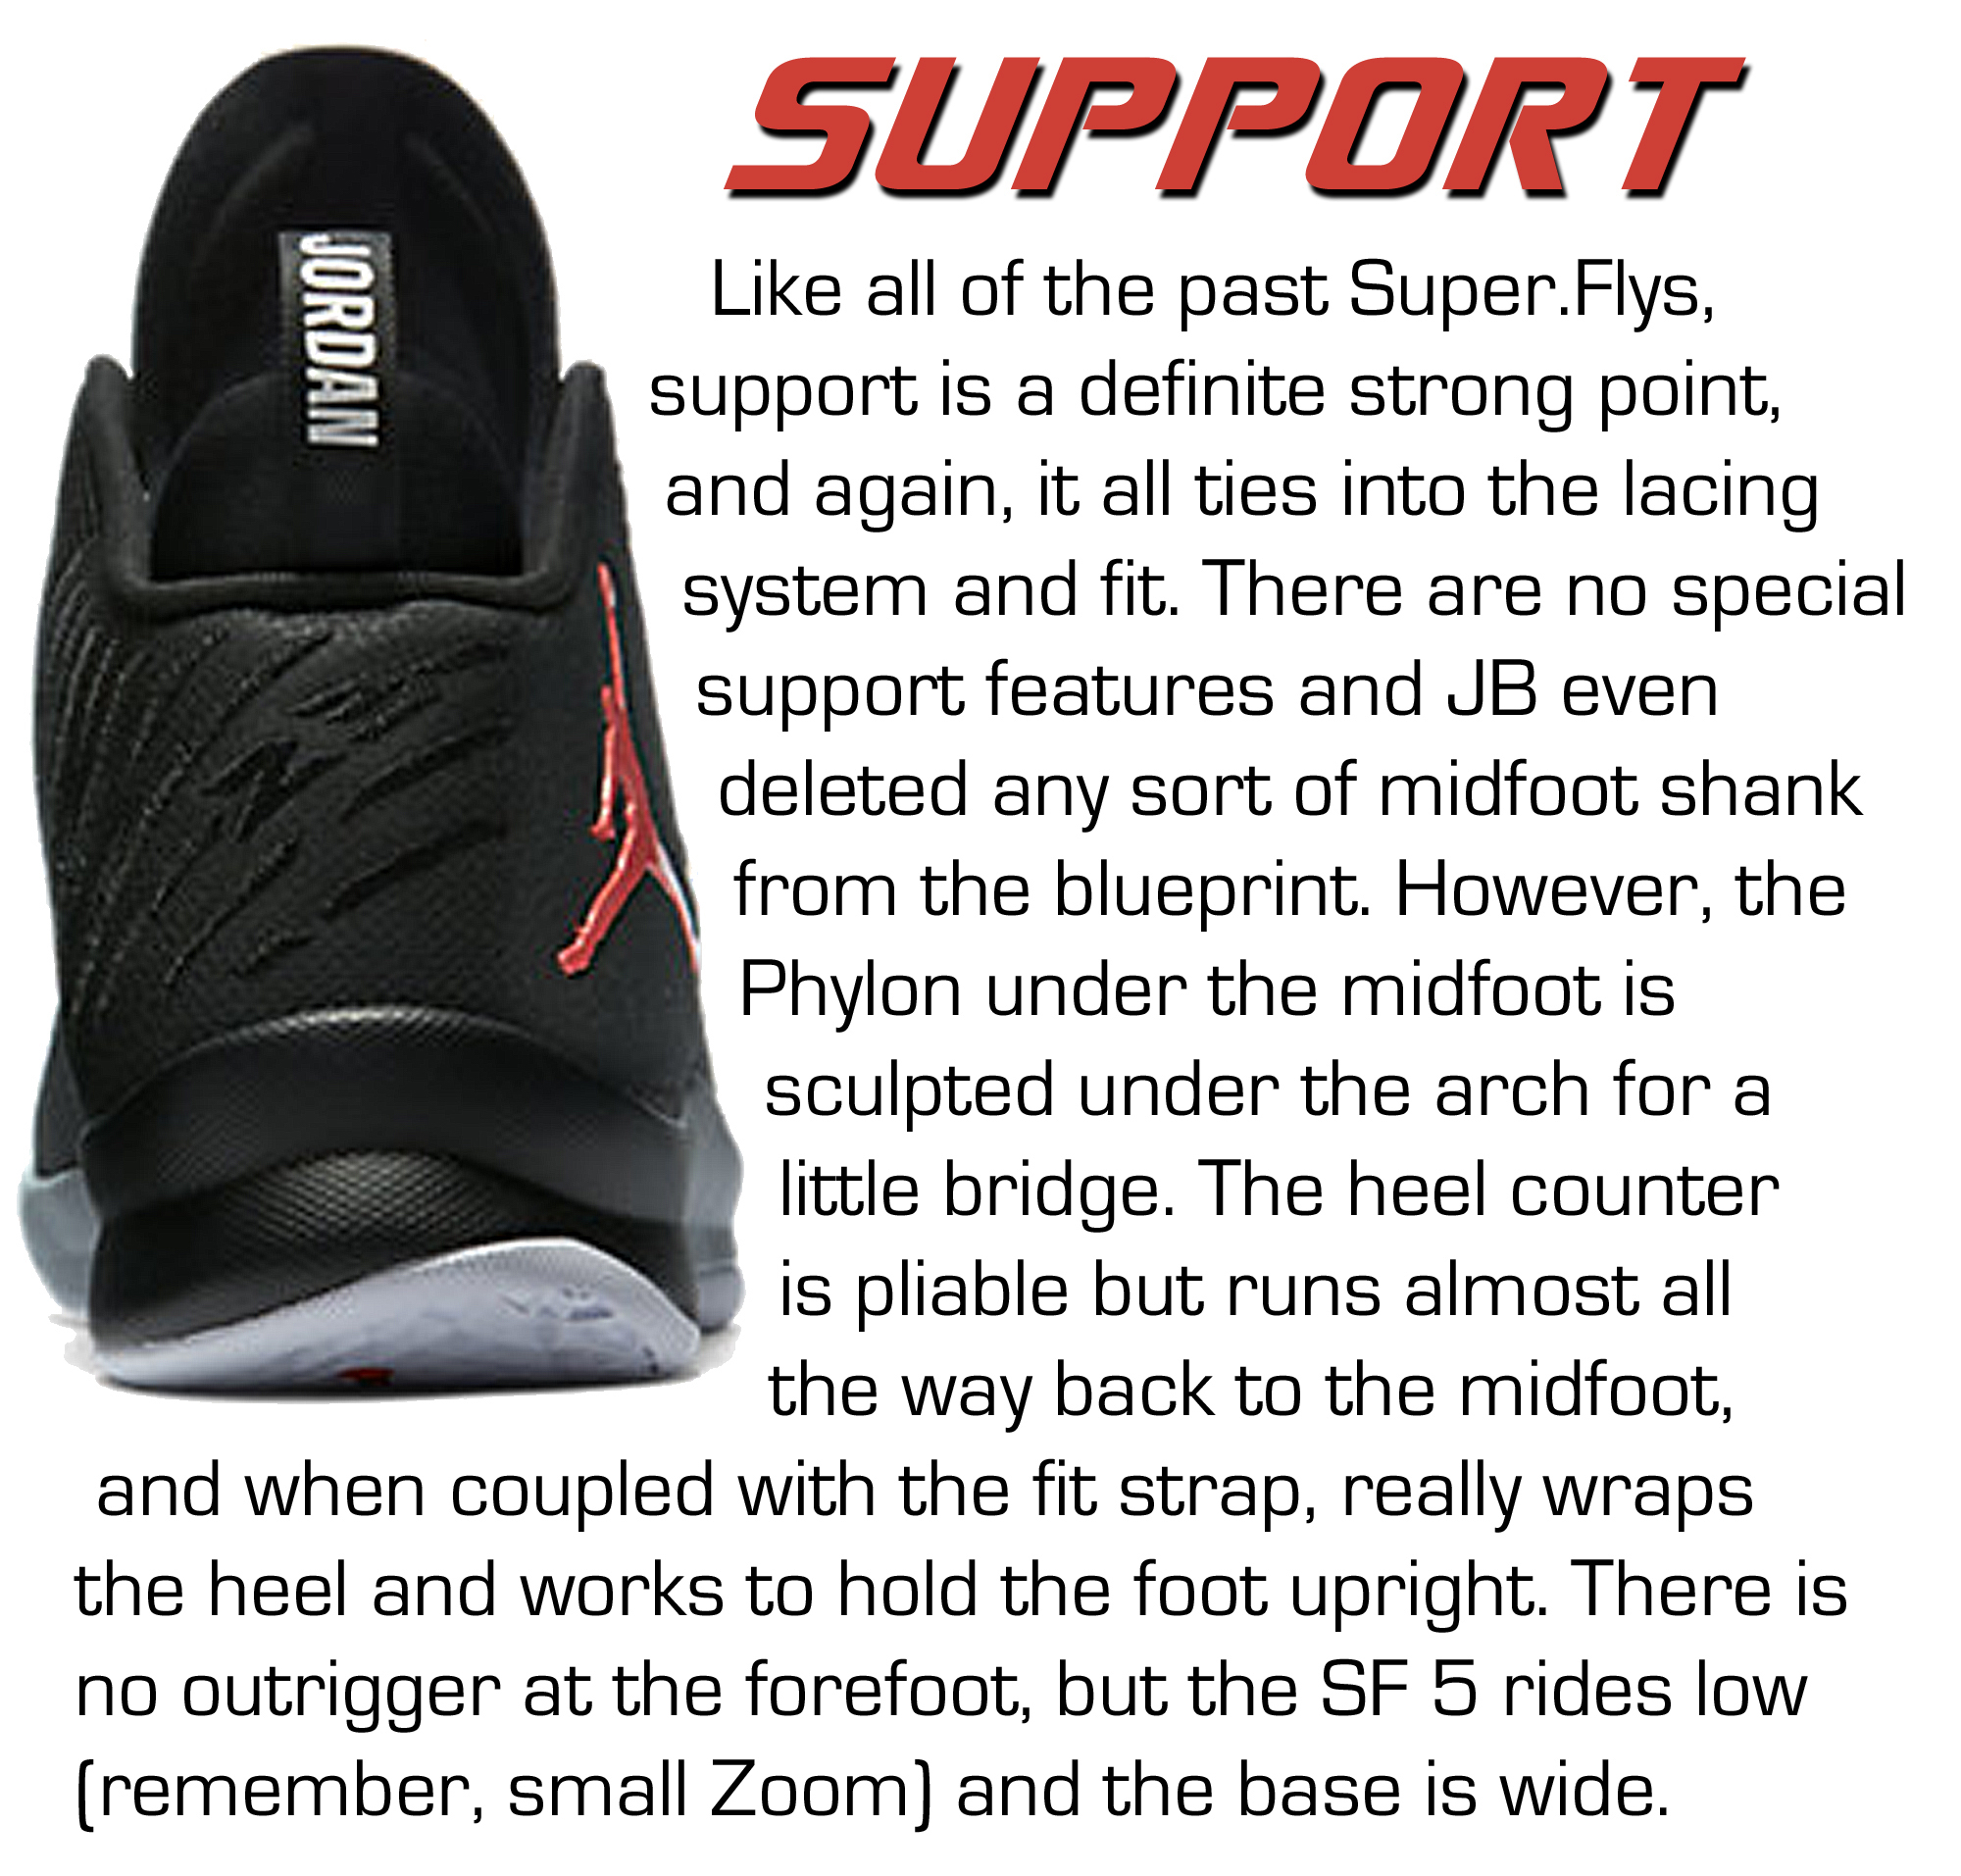 Super.Fly 5 - Support